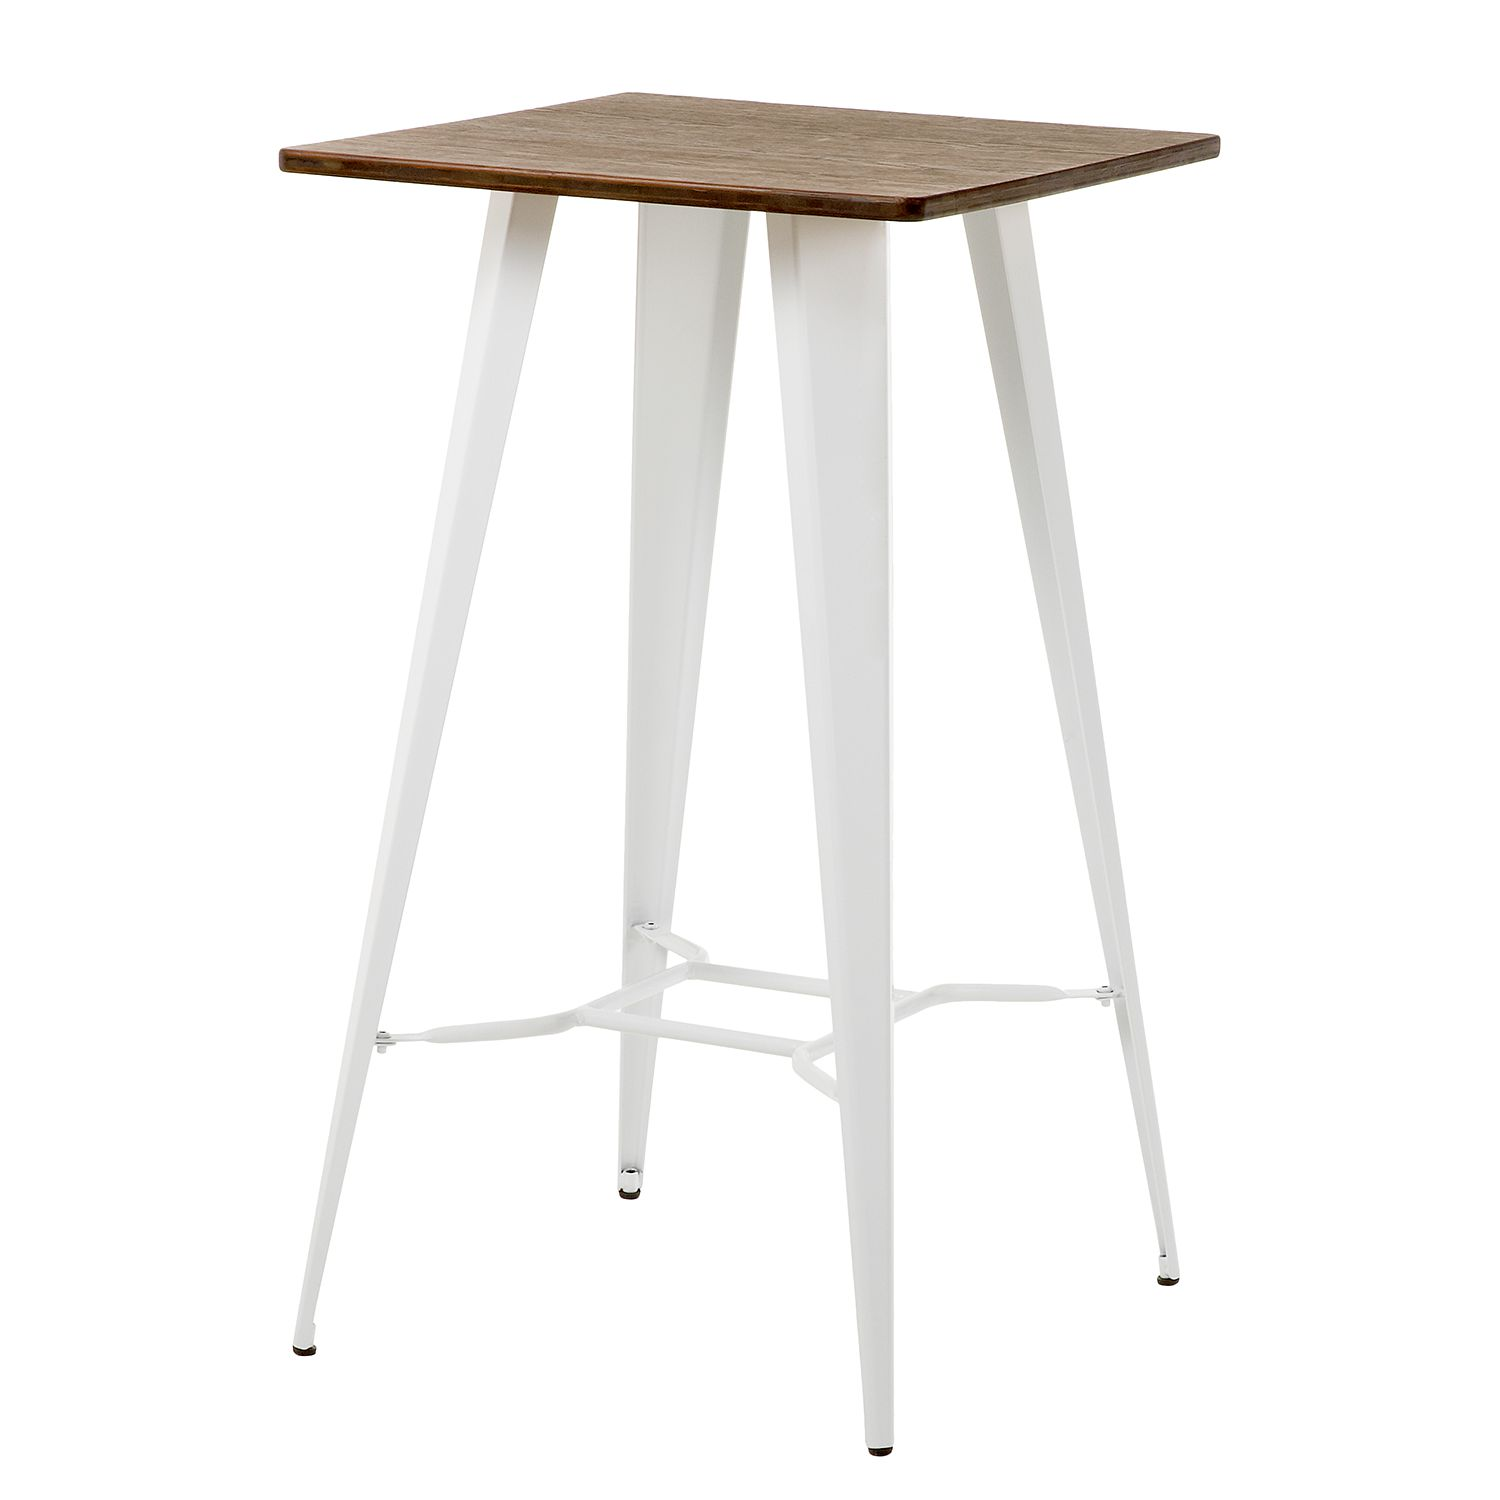 Home 24 - Table de bar roth - bambou massif / acier - blanc, morteens